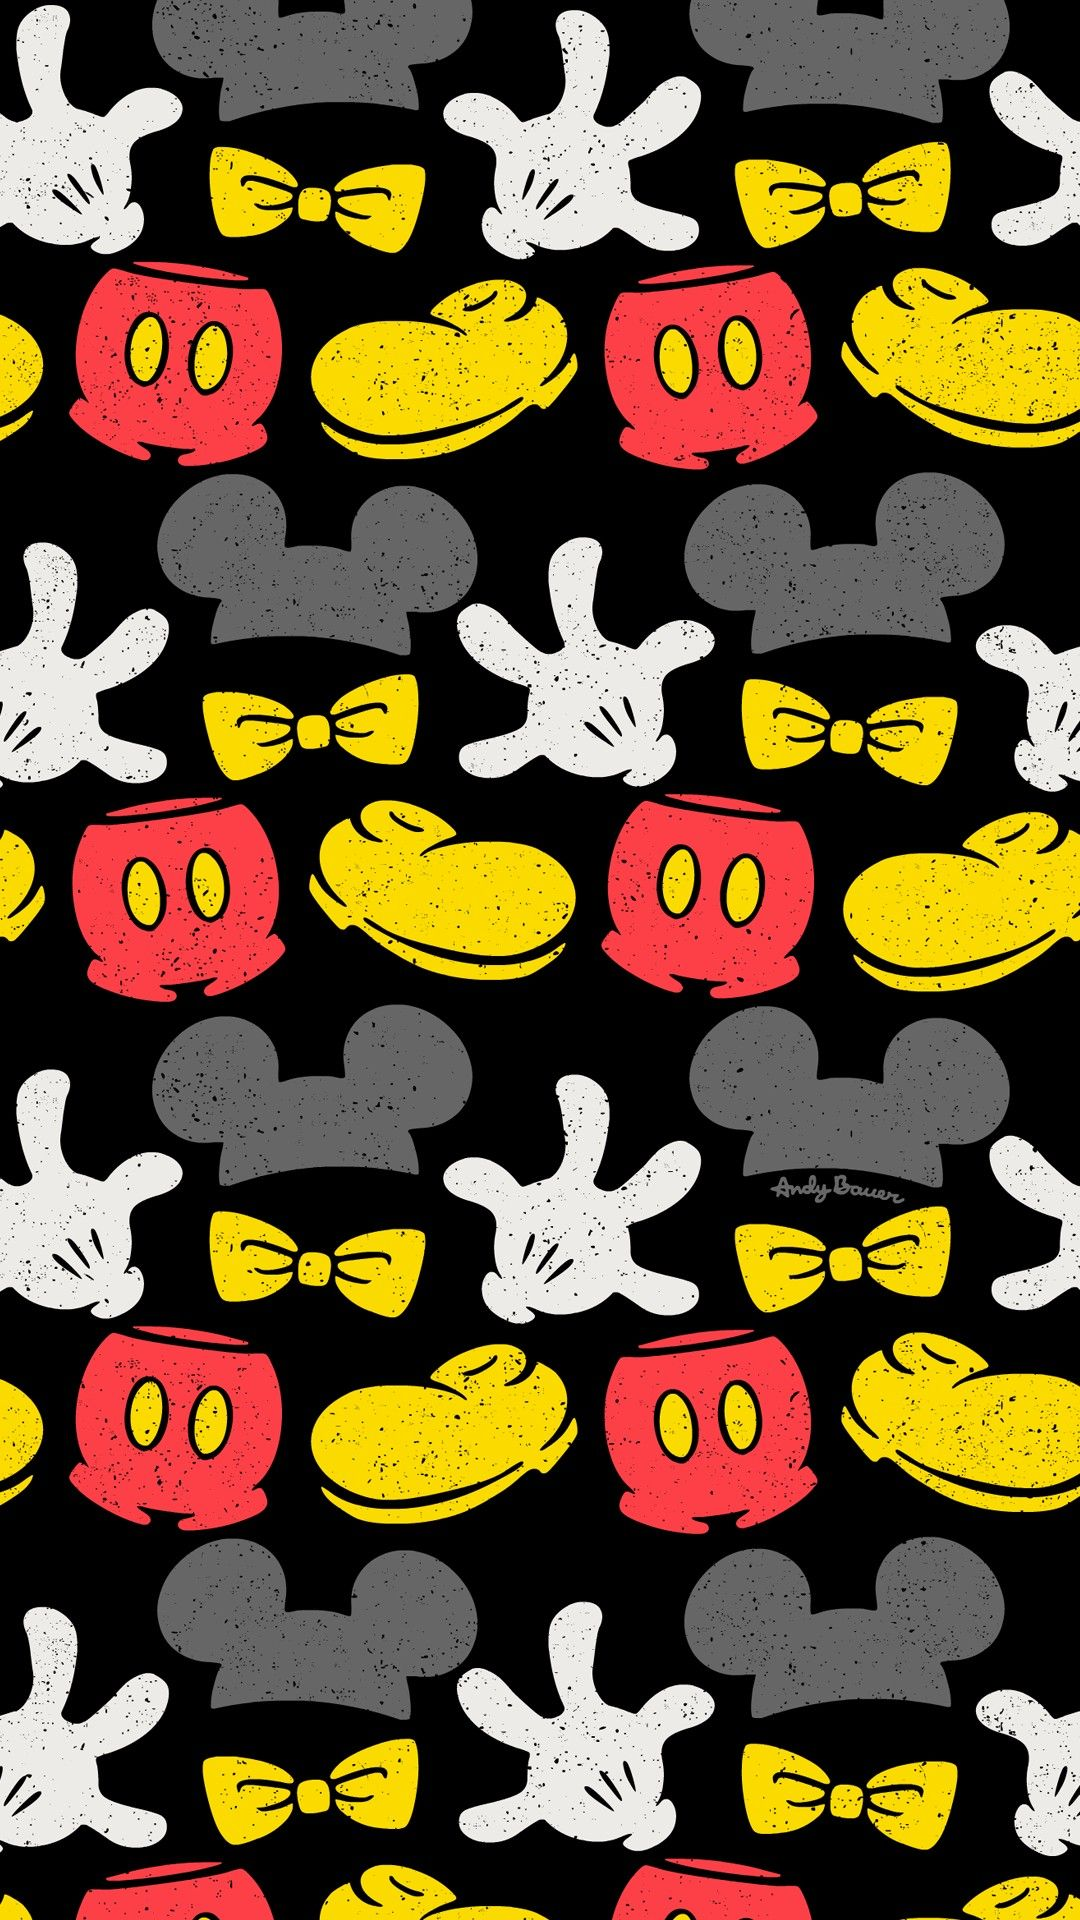 Mickey mouse repeat pattern surface design wallpaper free